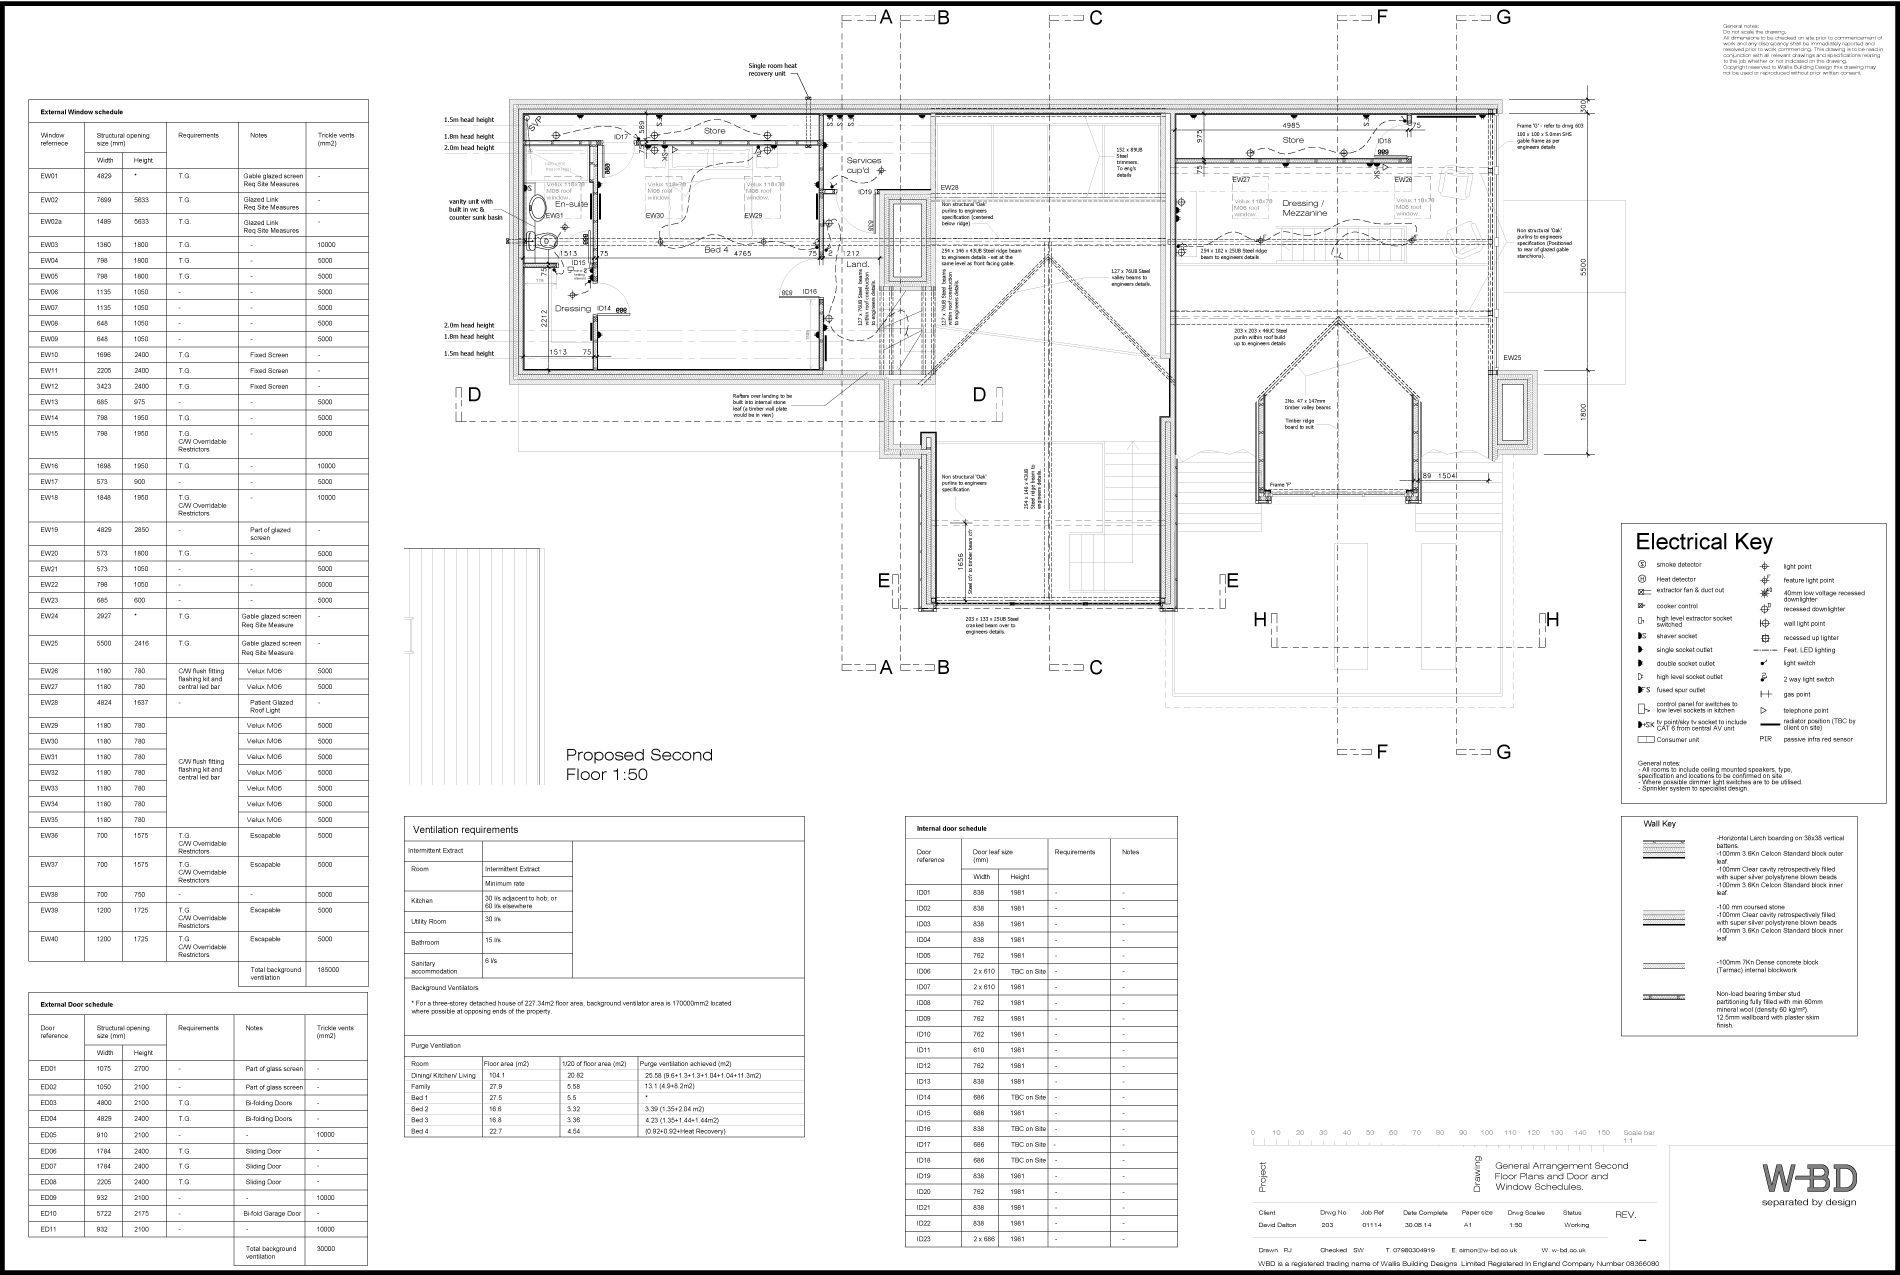 203 GA Second Floor plans and door and window schedules